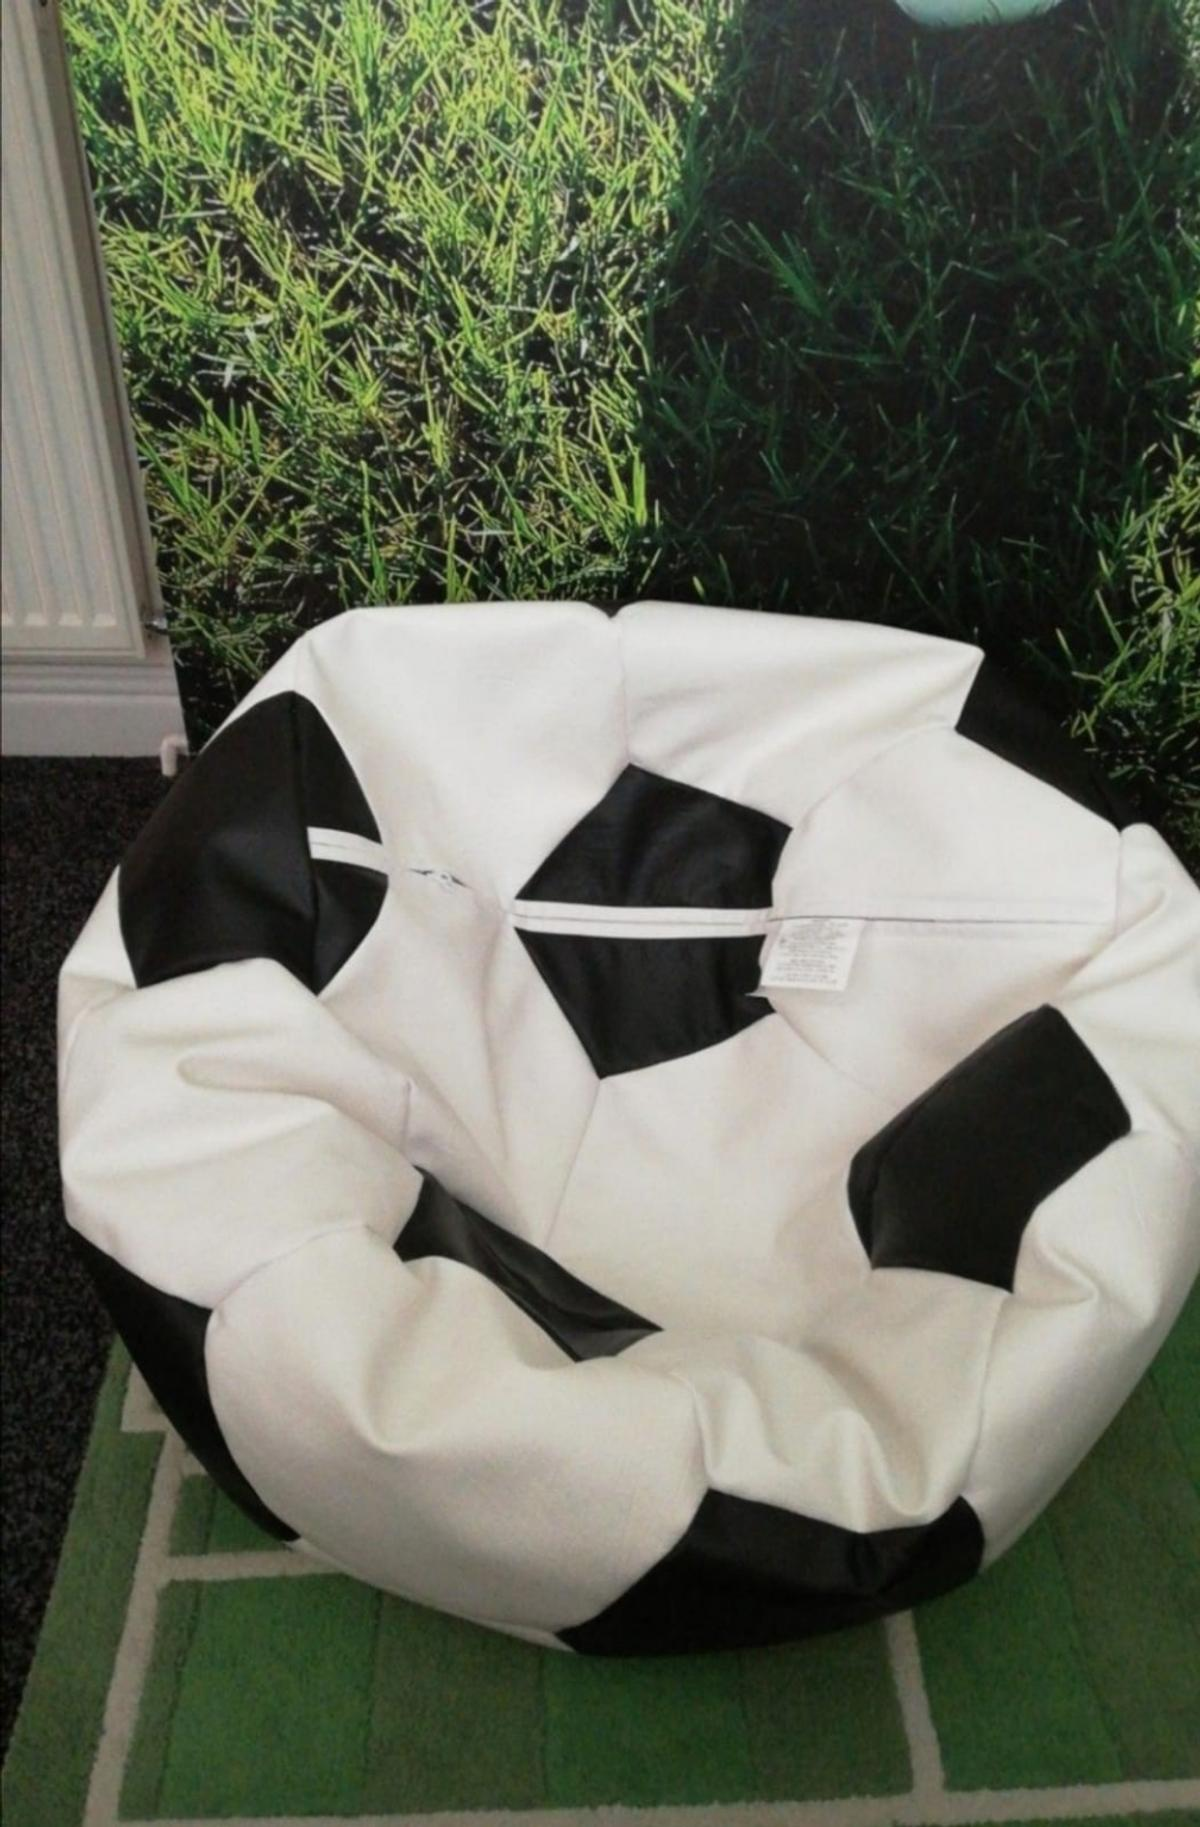 Football beanbag Can refill if needed In good condition From a clean and smoke free home. Collection only social distancing